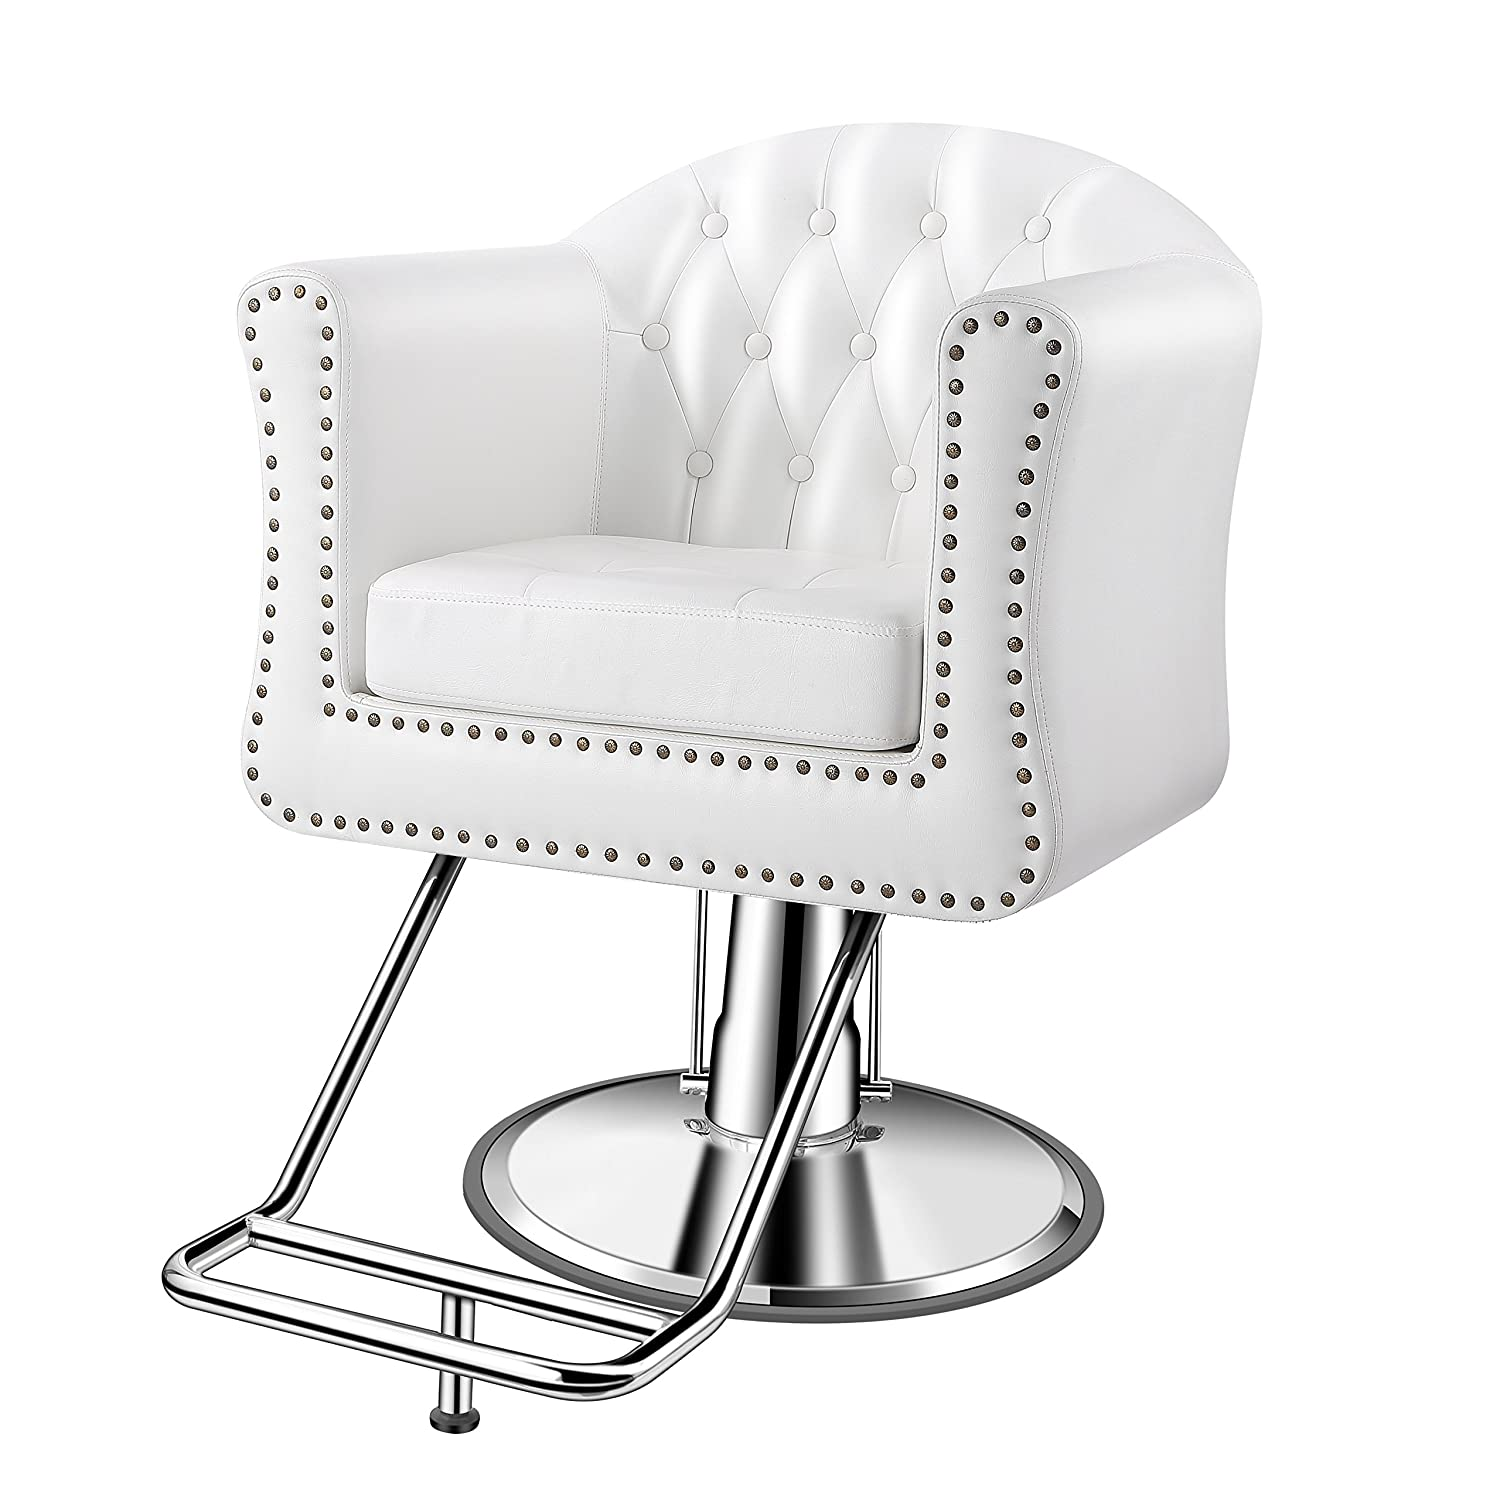 Baasha Luxury Classic White Styling Chair For Hair Salon, All Purpose  Square Salon Chair With Hydraulic